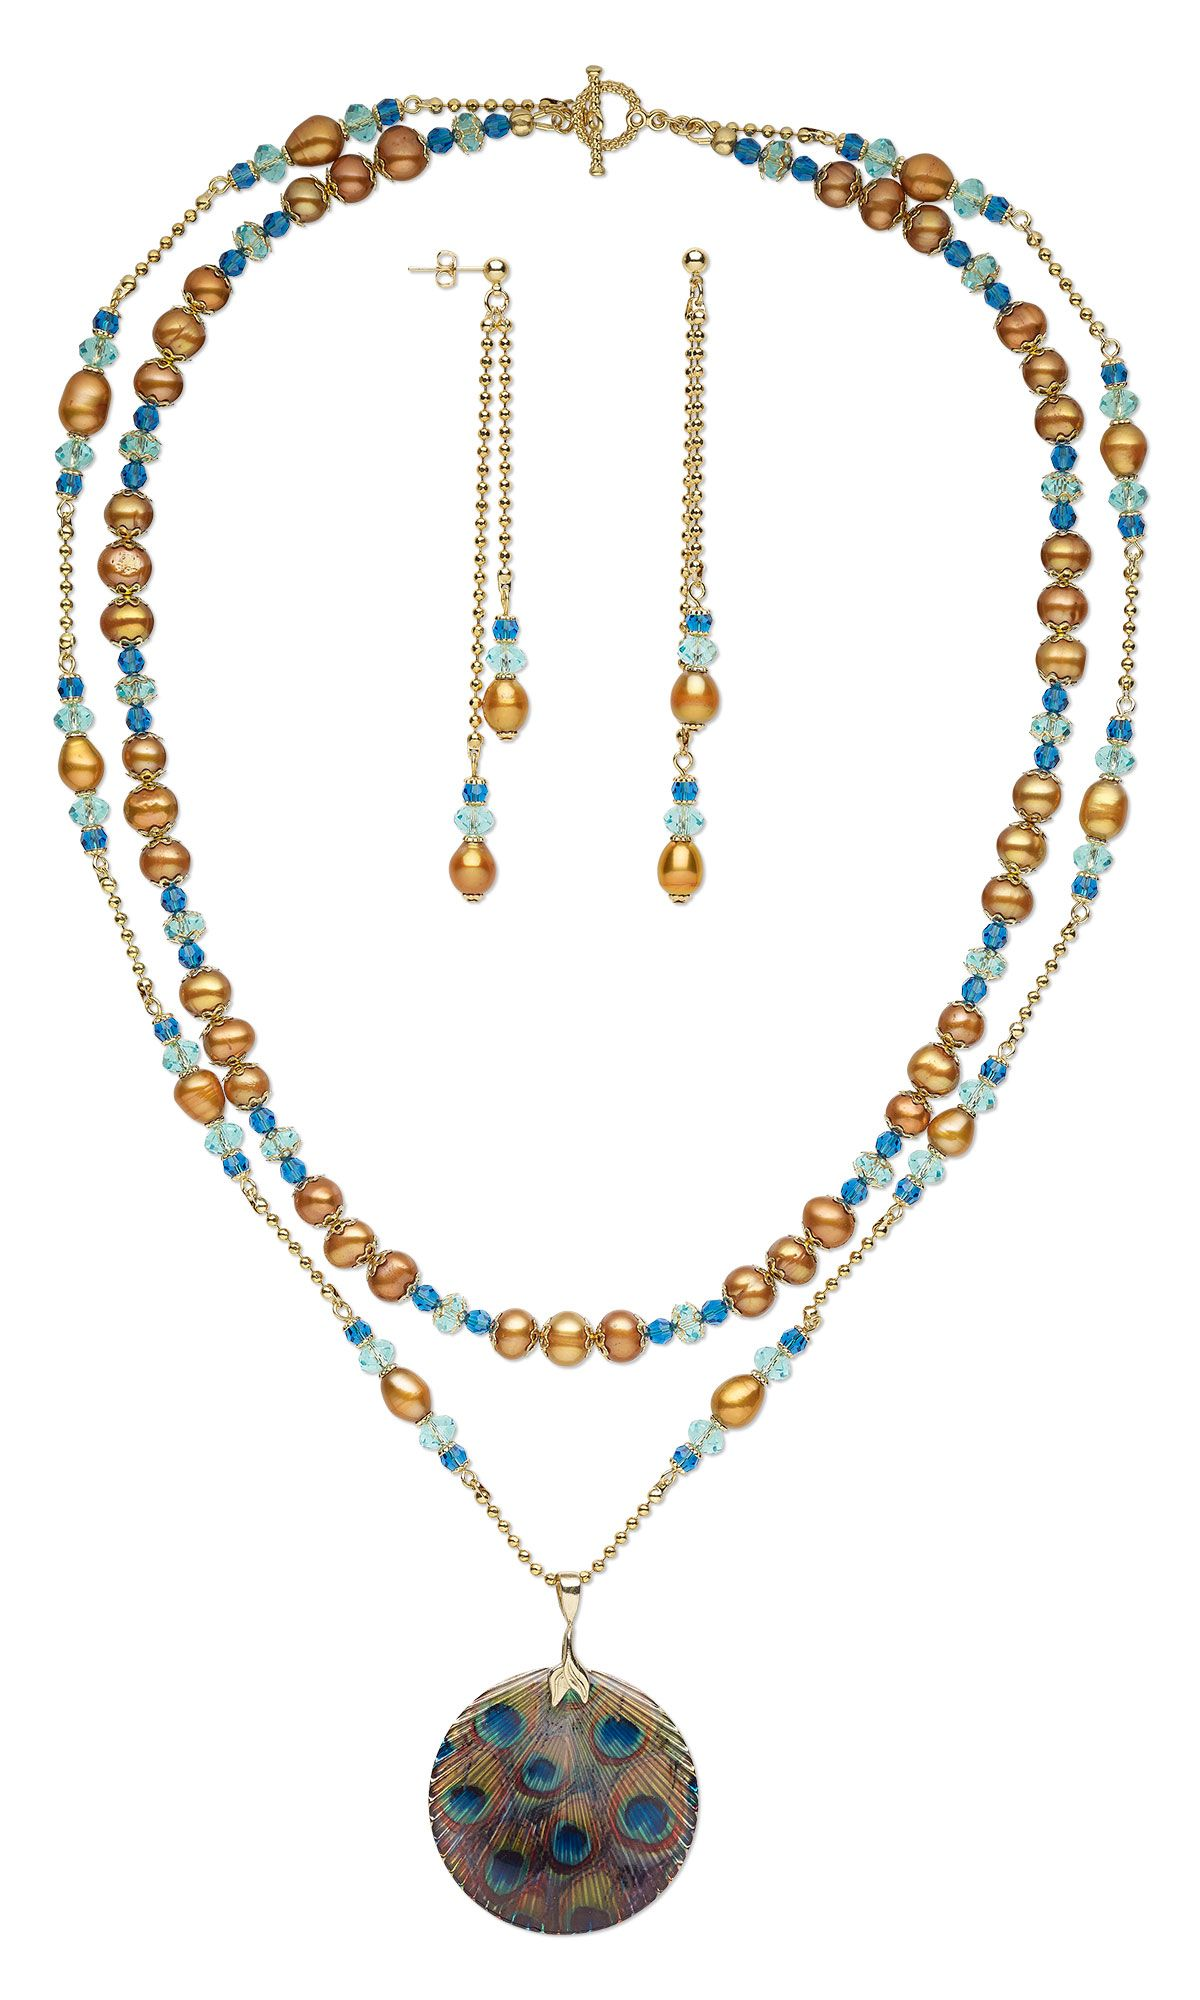 Jewelry design doublestrand necklace and earring set with resin